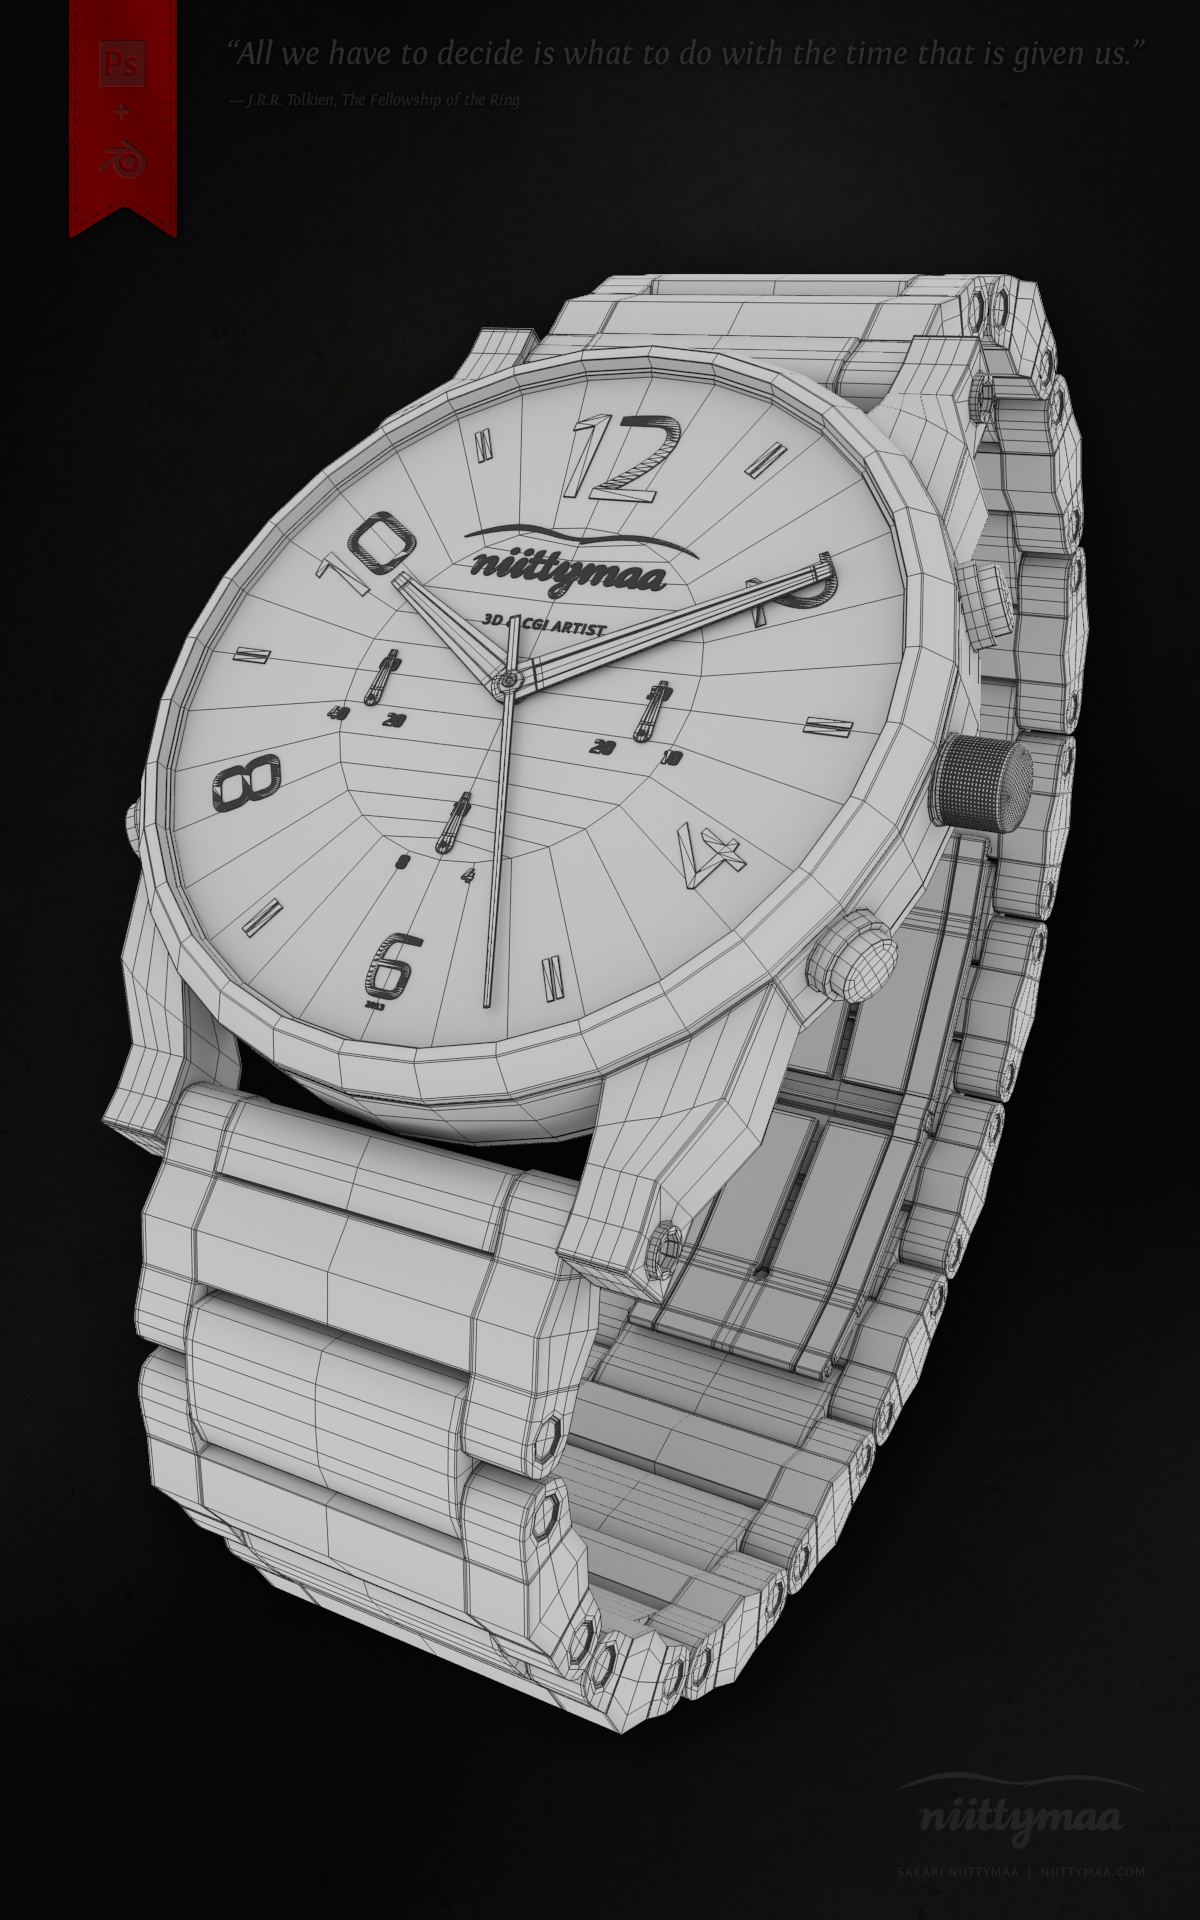 Wristwatch_Final_Wireframe